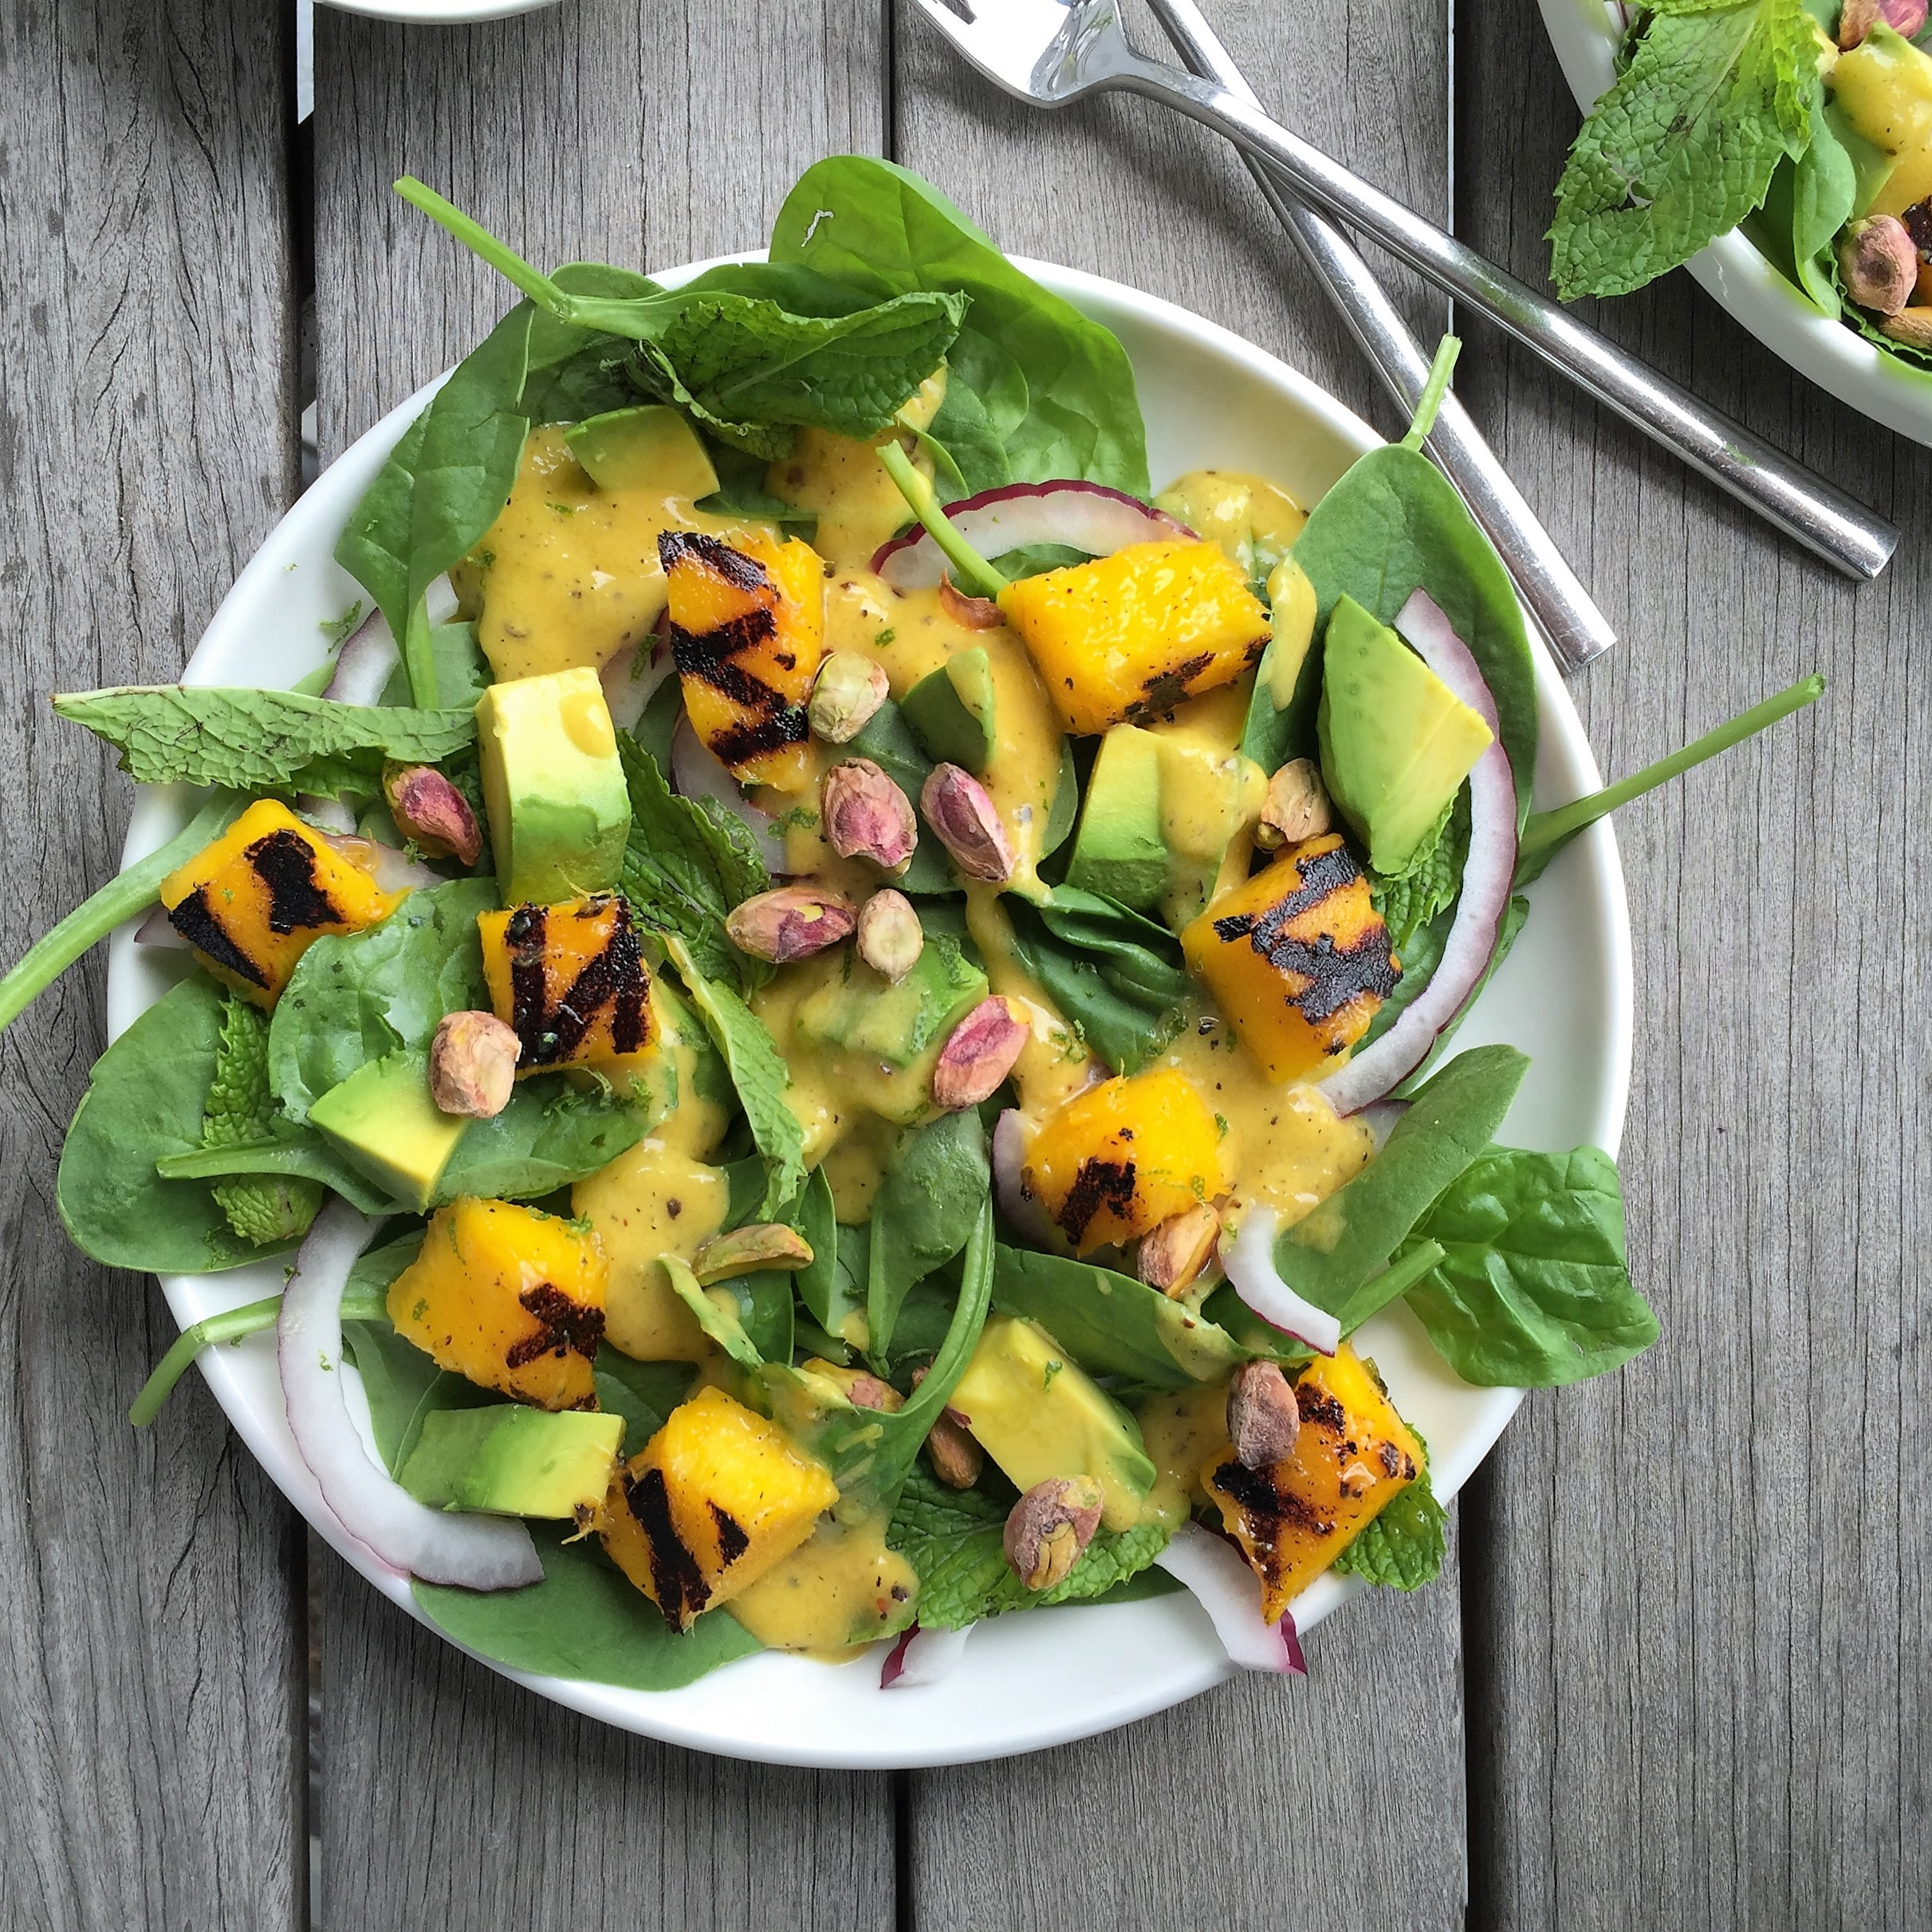 grilled mango salad with avocado & pistachios